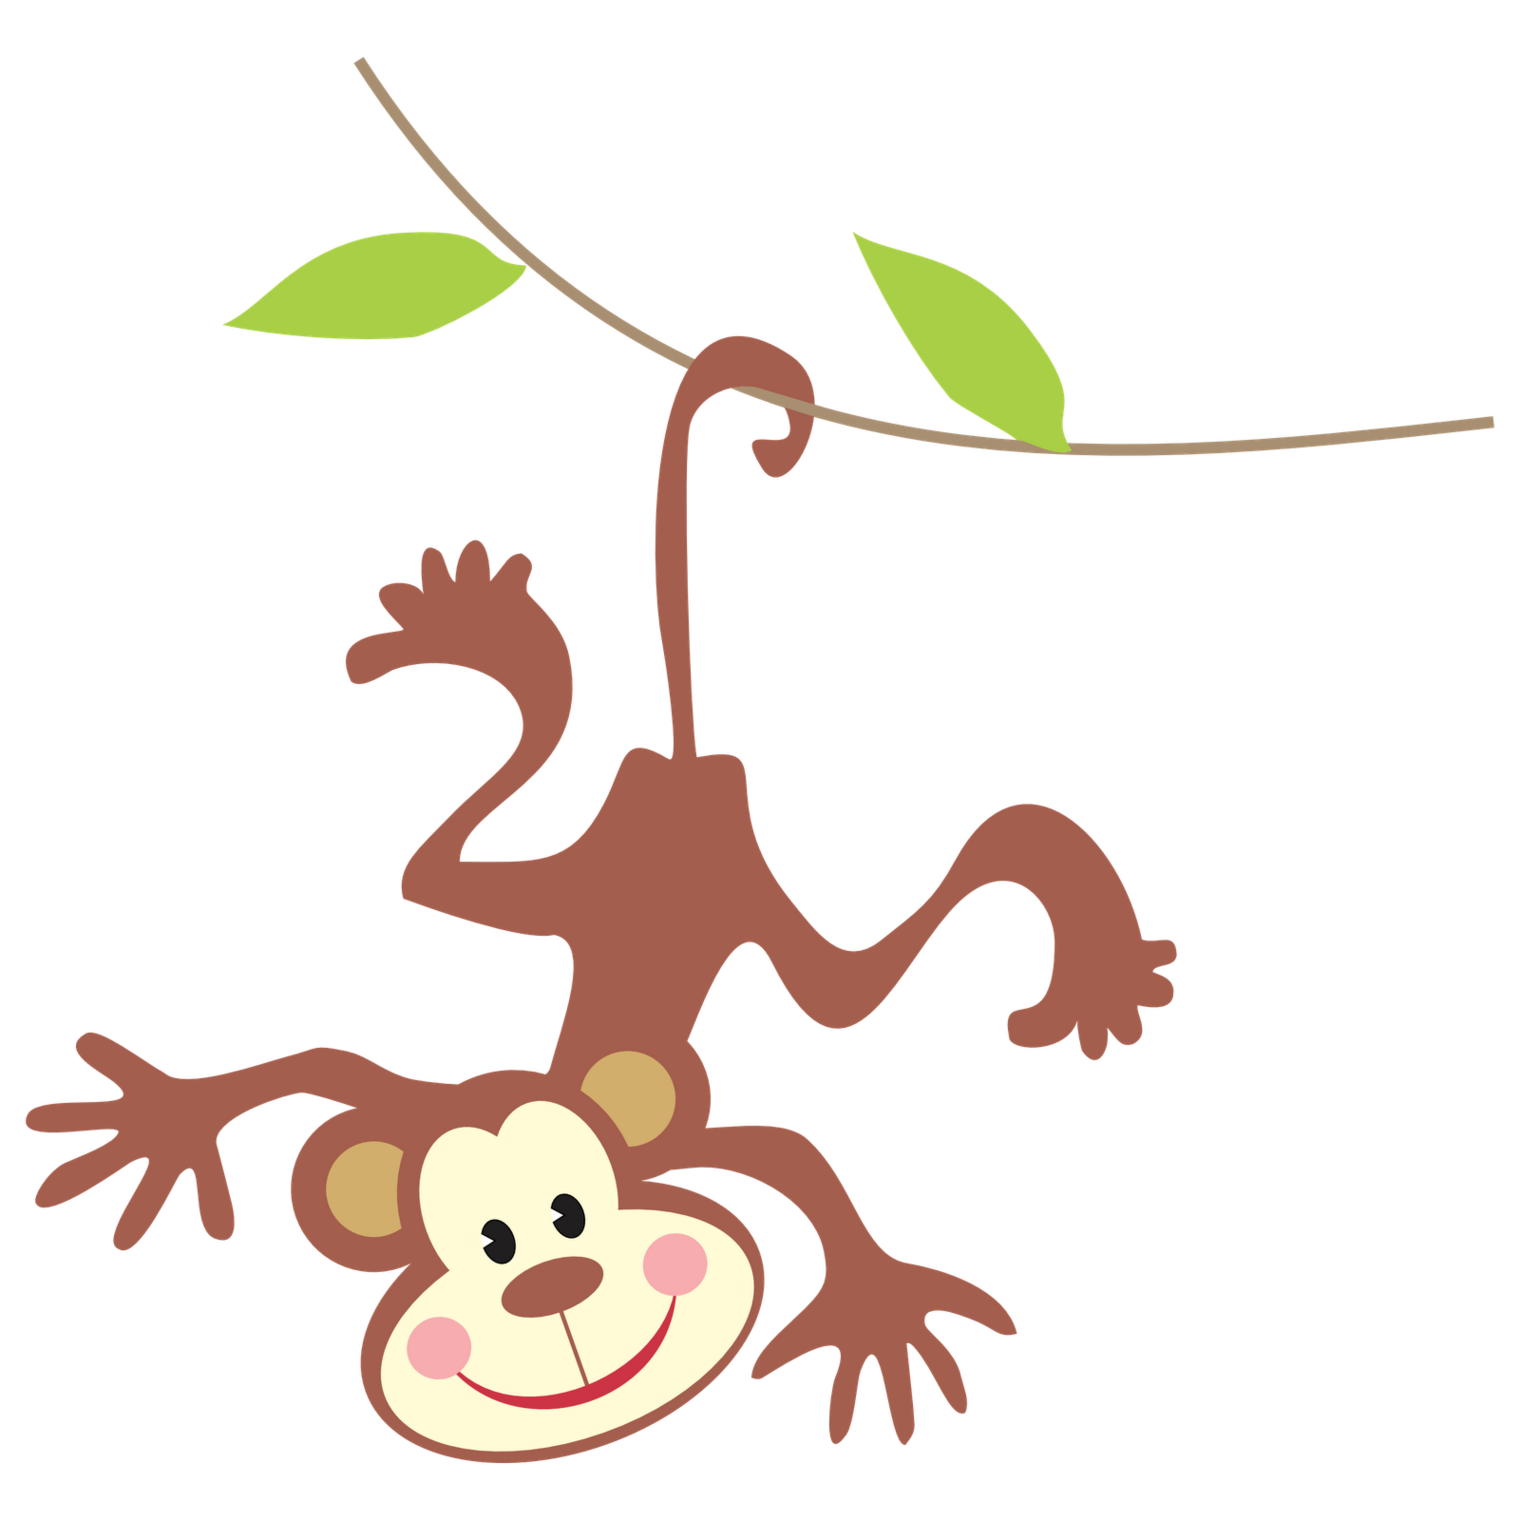 Clipart monkey template. Hanging image group baby